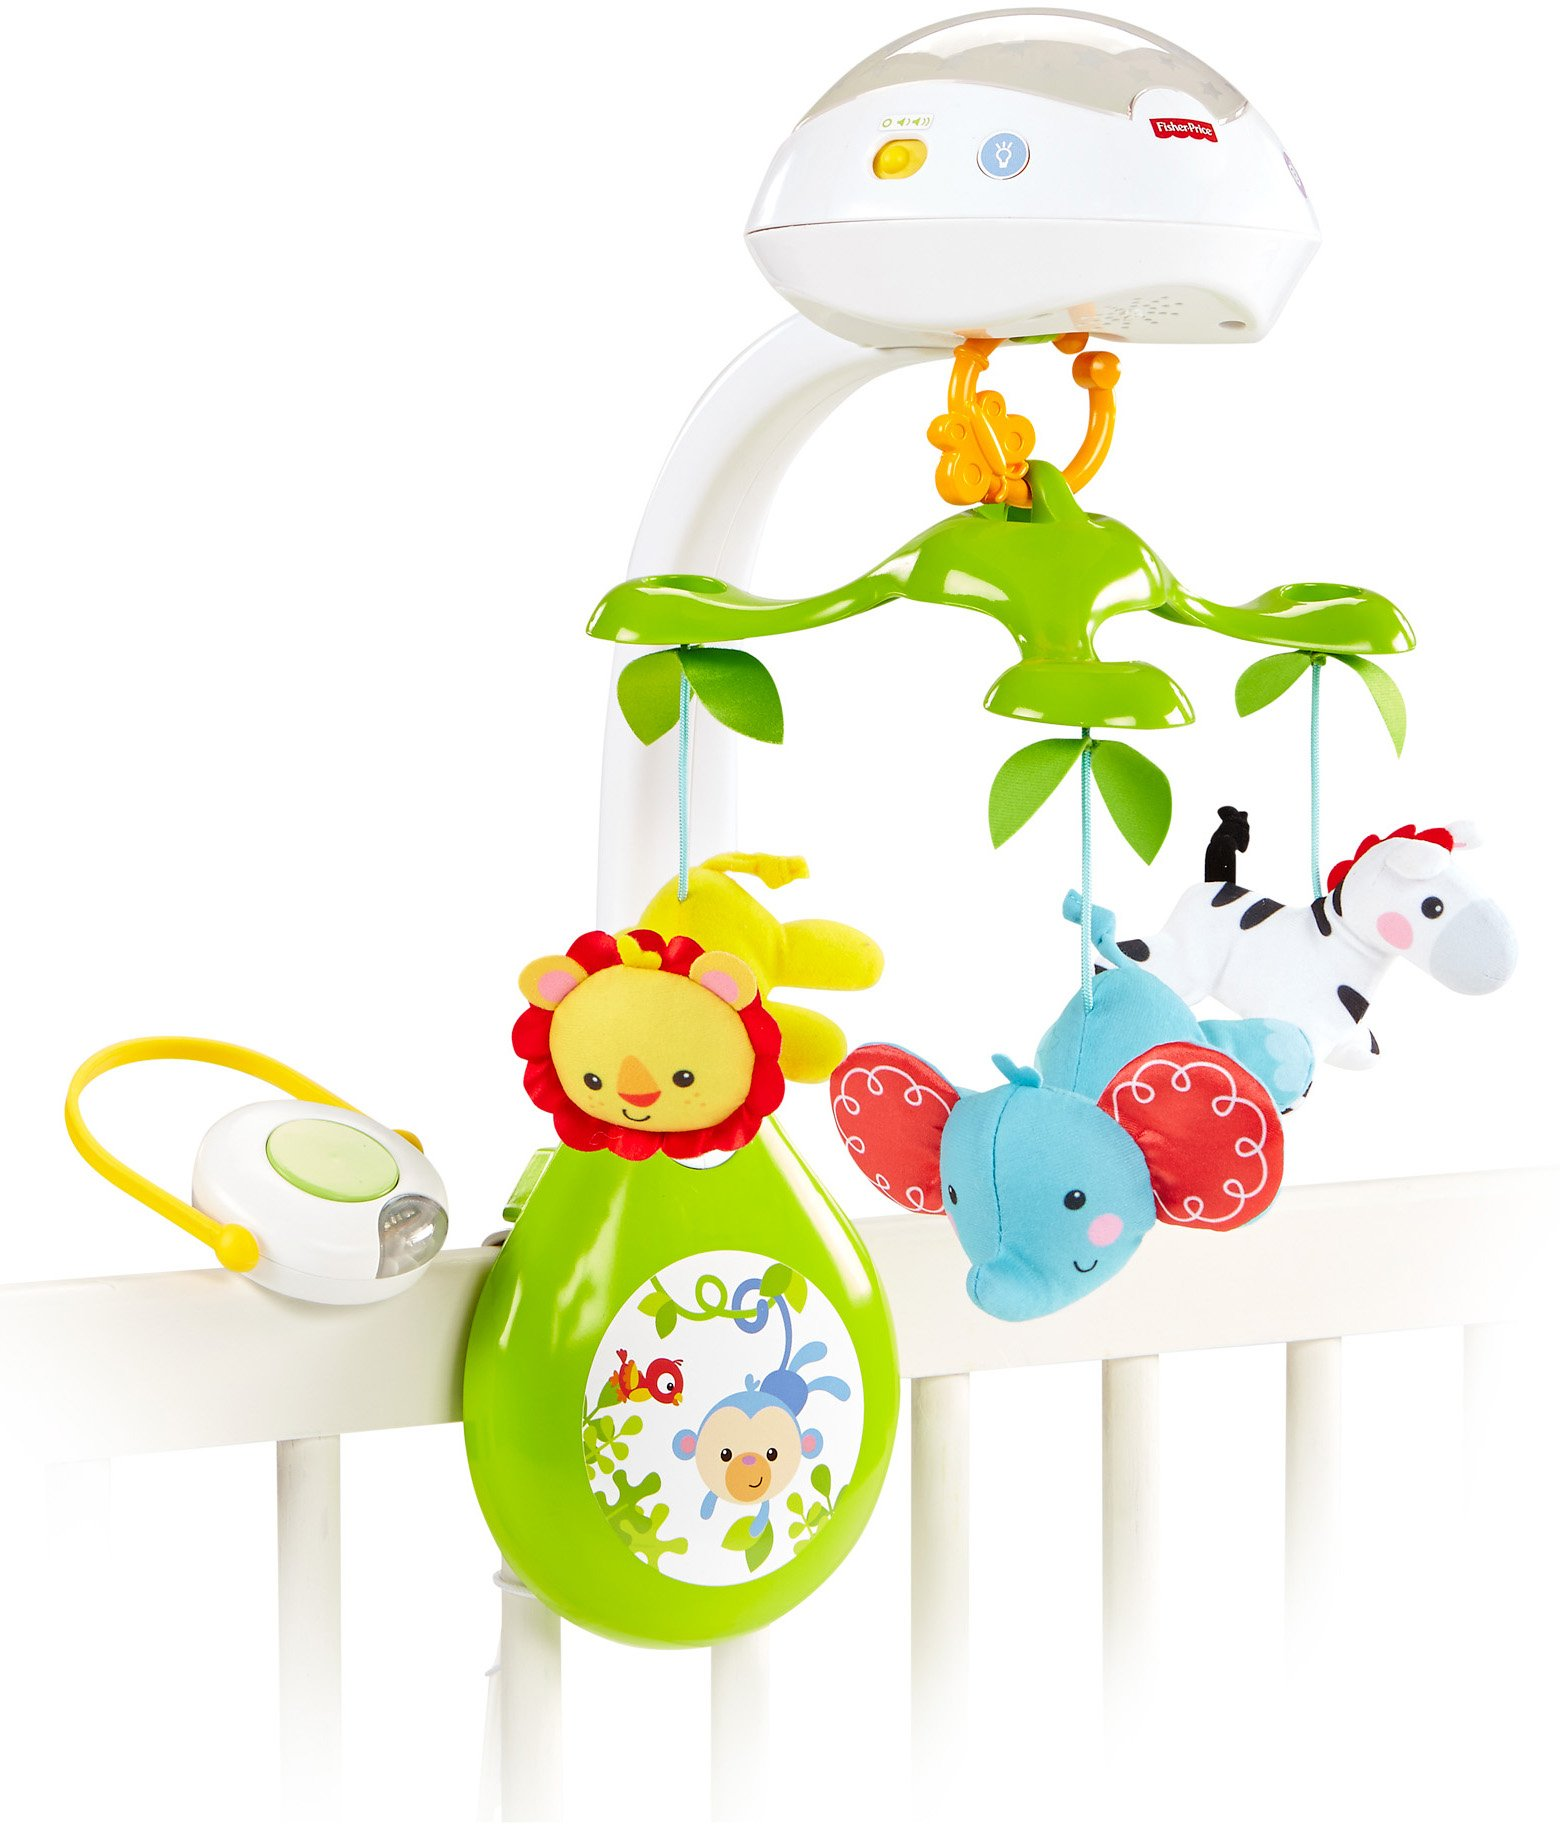 Fisher-Price Deluxe Projection Mobile, Rainforest Friends 3-in-1 by Fisher-Price